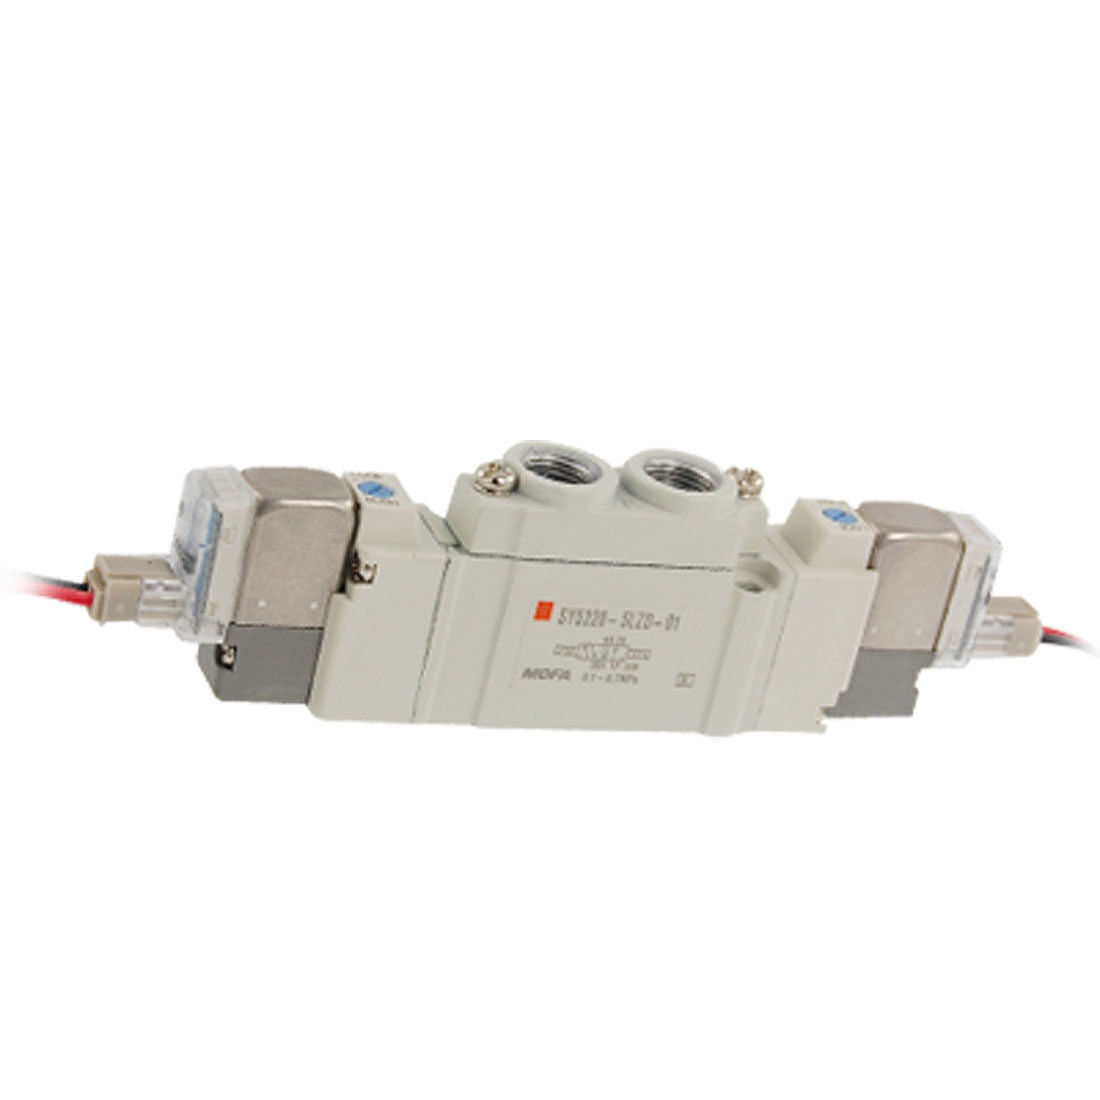 SY5220-5LZD-01 DC 24V 2 Position Double Action 5 Ports Solenoid Valve